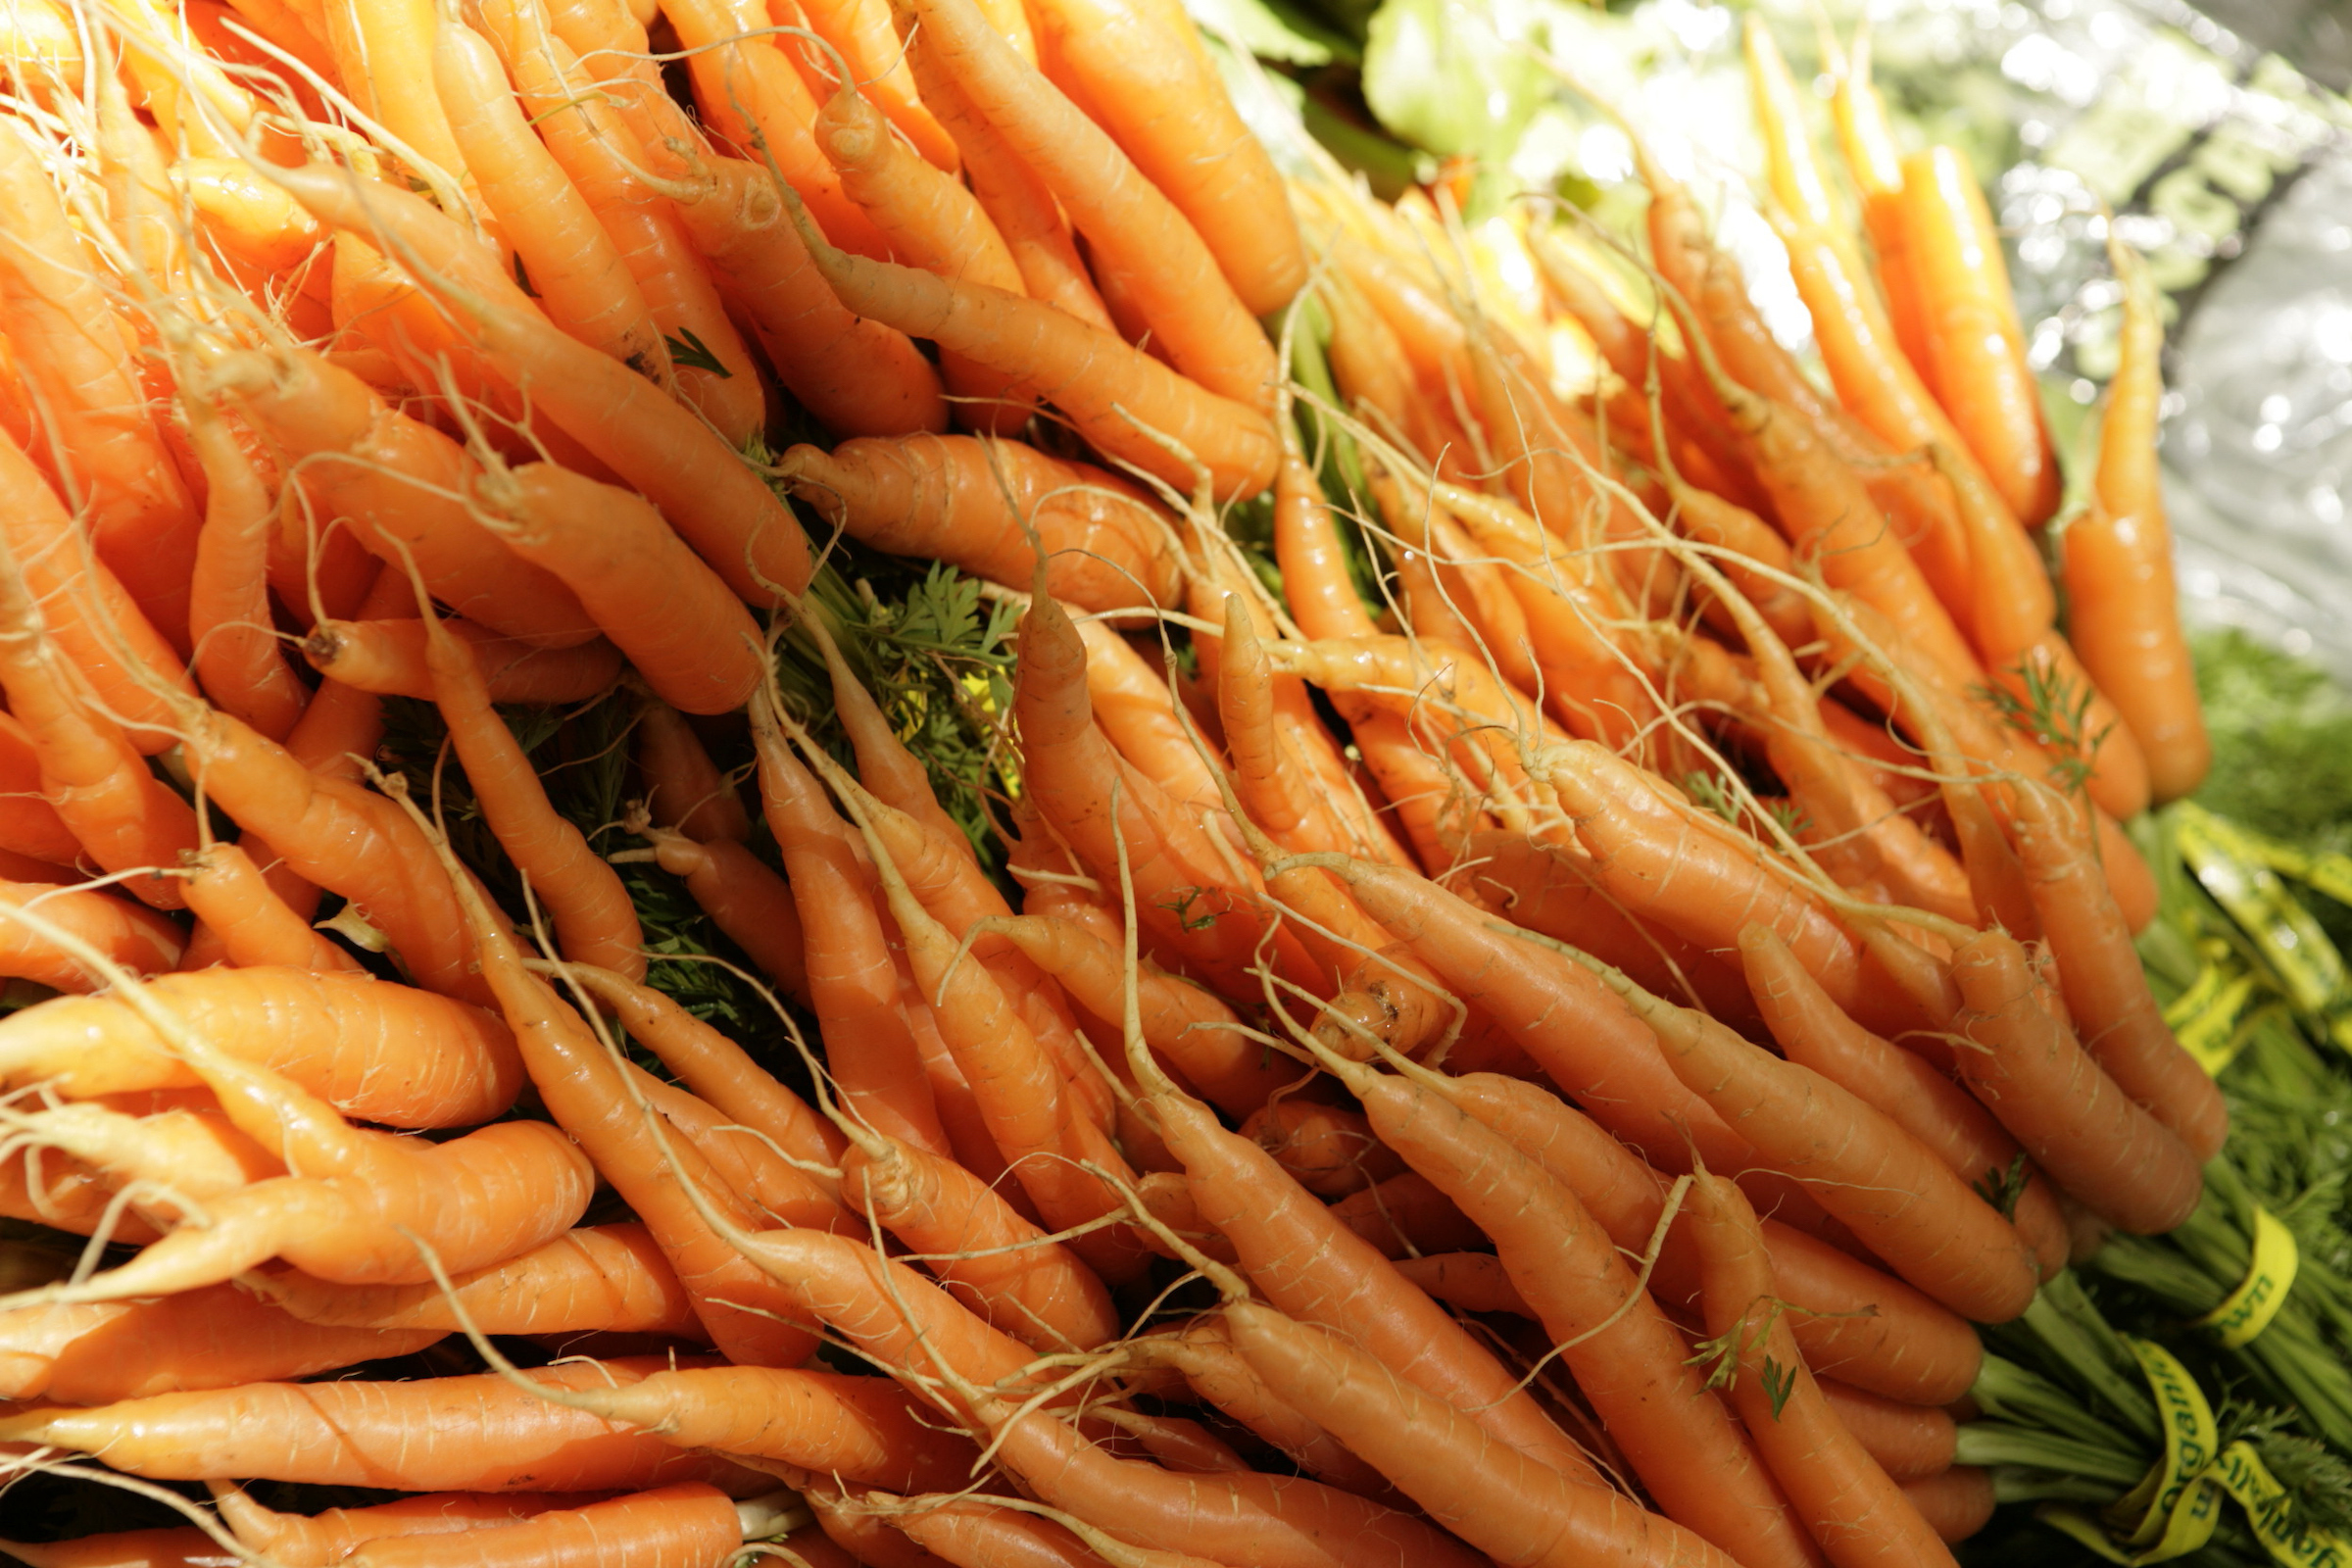 bunches of carrots to be sold at a farmer's market